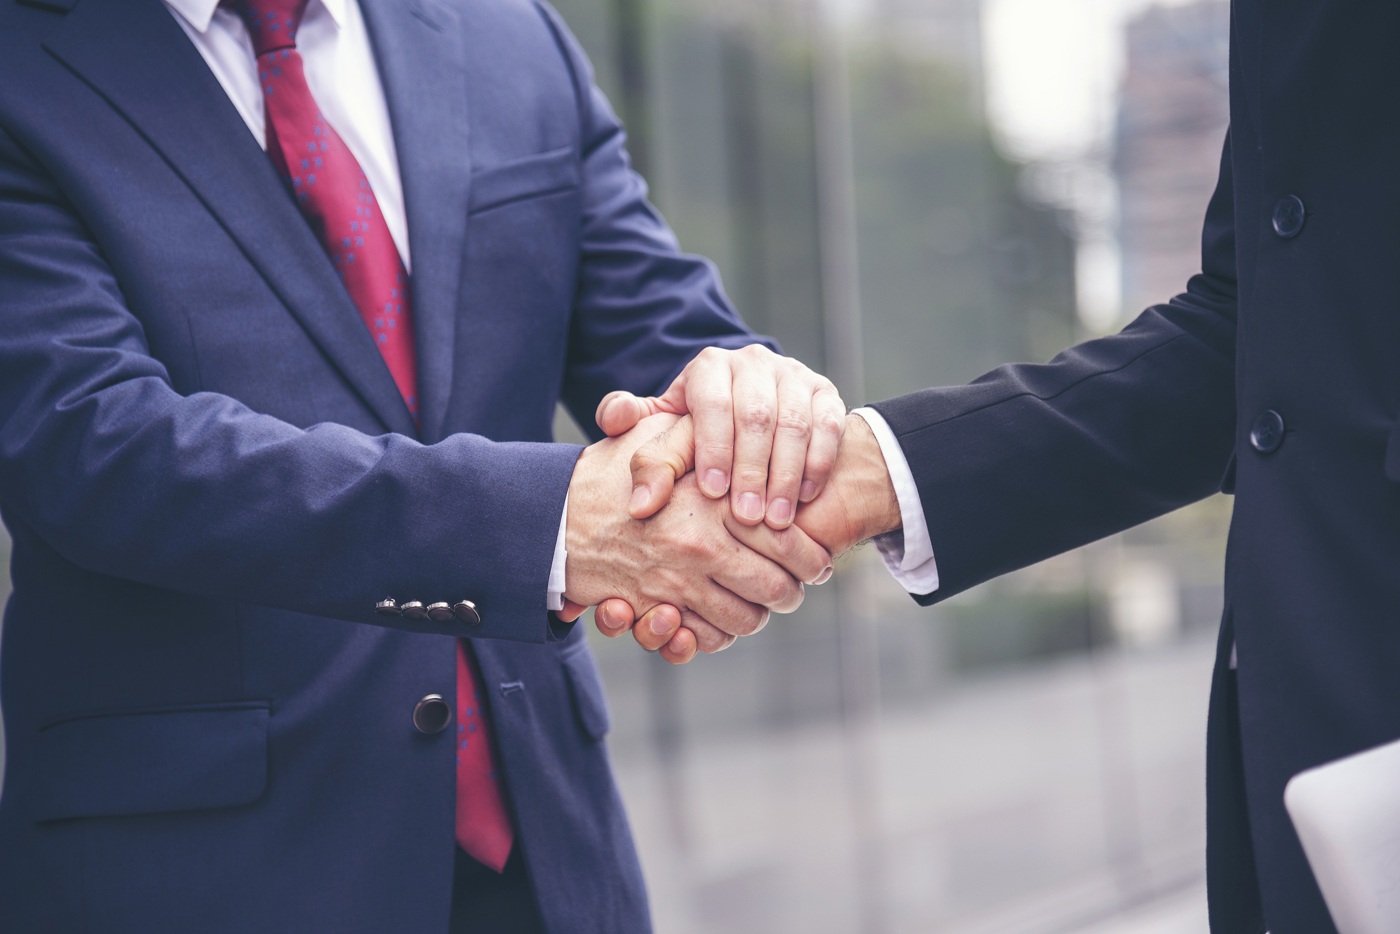 Acquisition, merger and relocation agreements